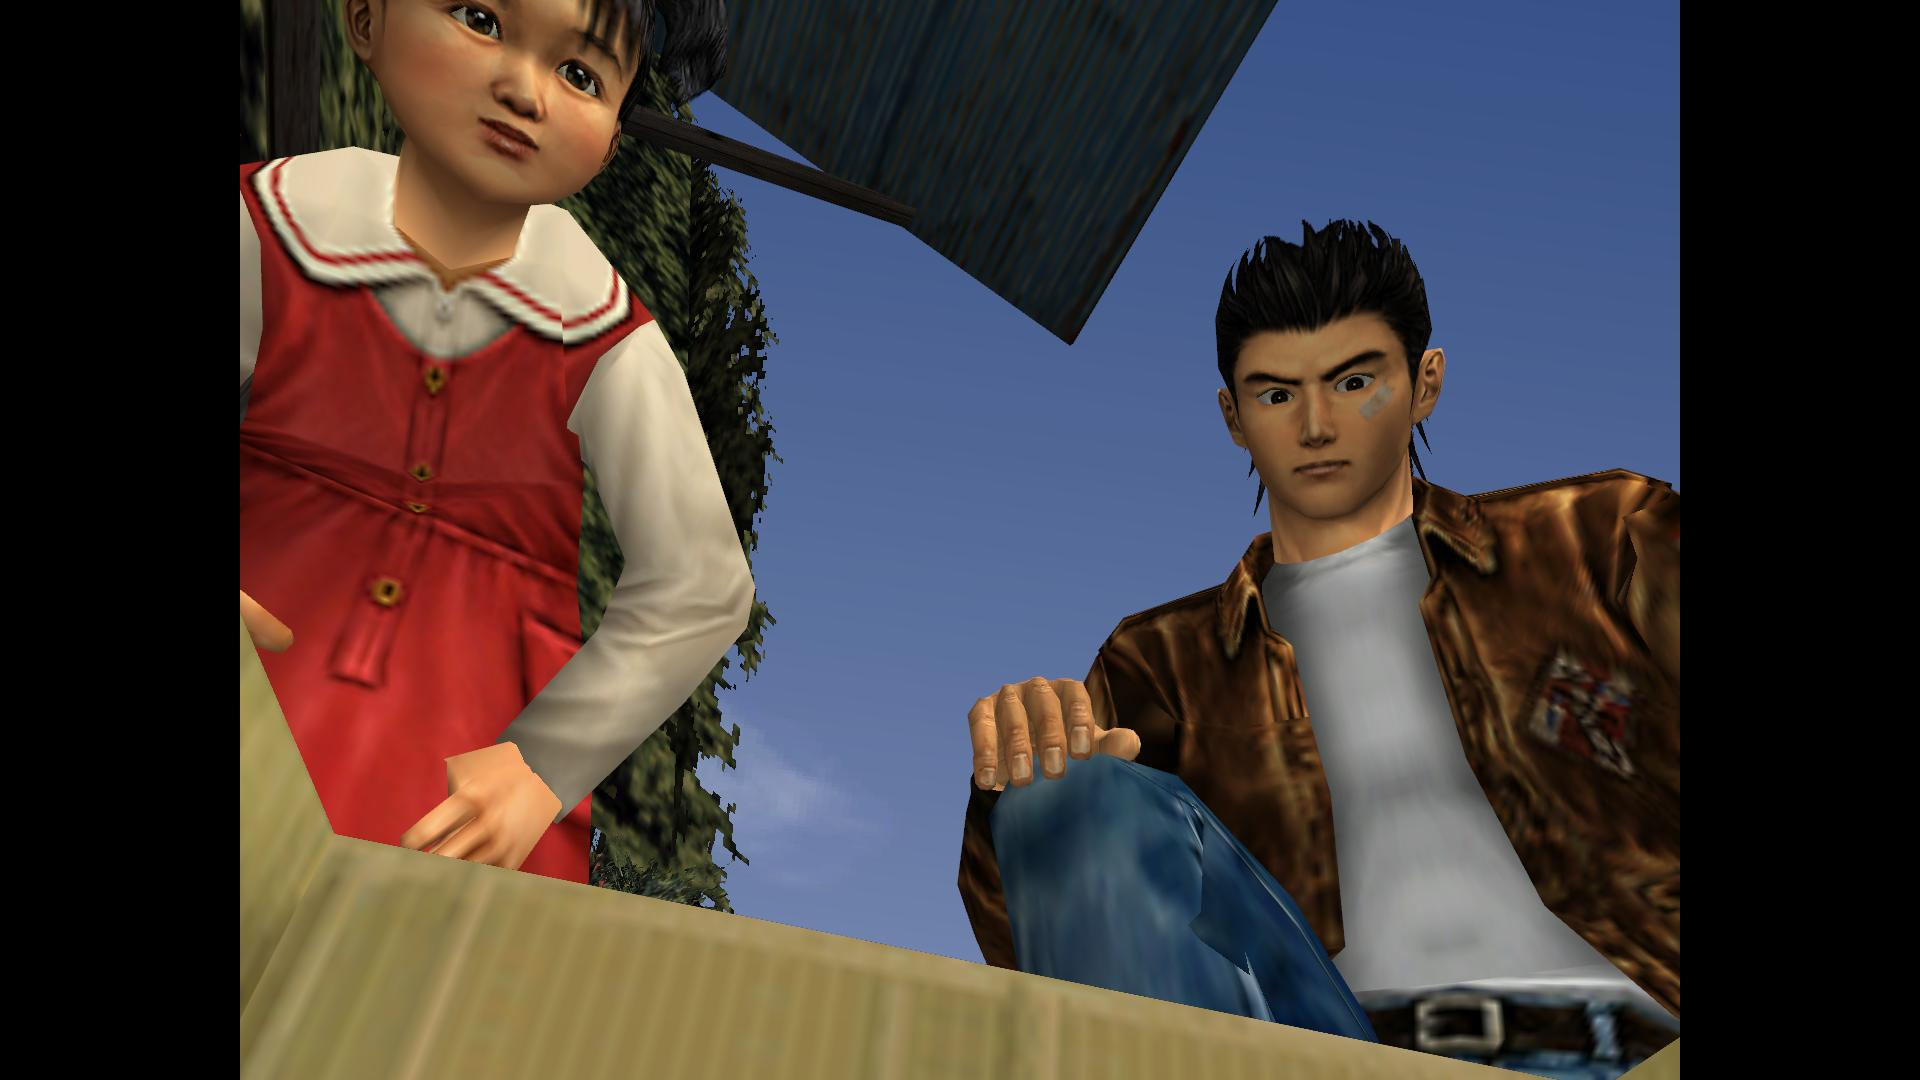 Watching Shenmue was an engrossing experience thansk to the dynamic camera angles.